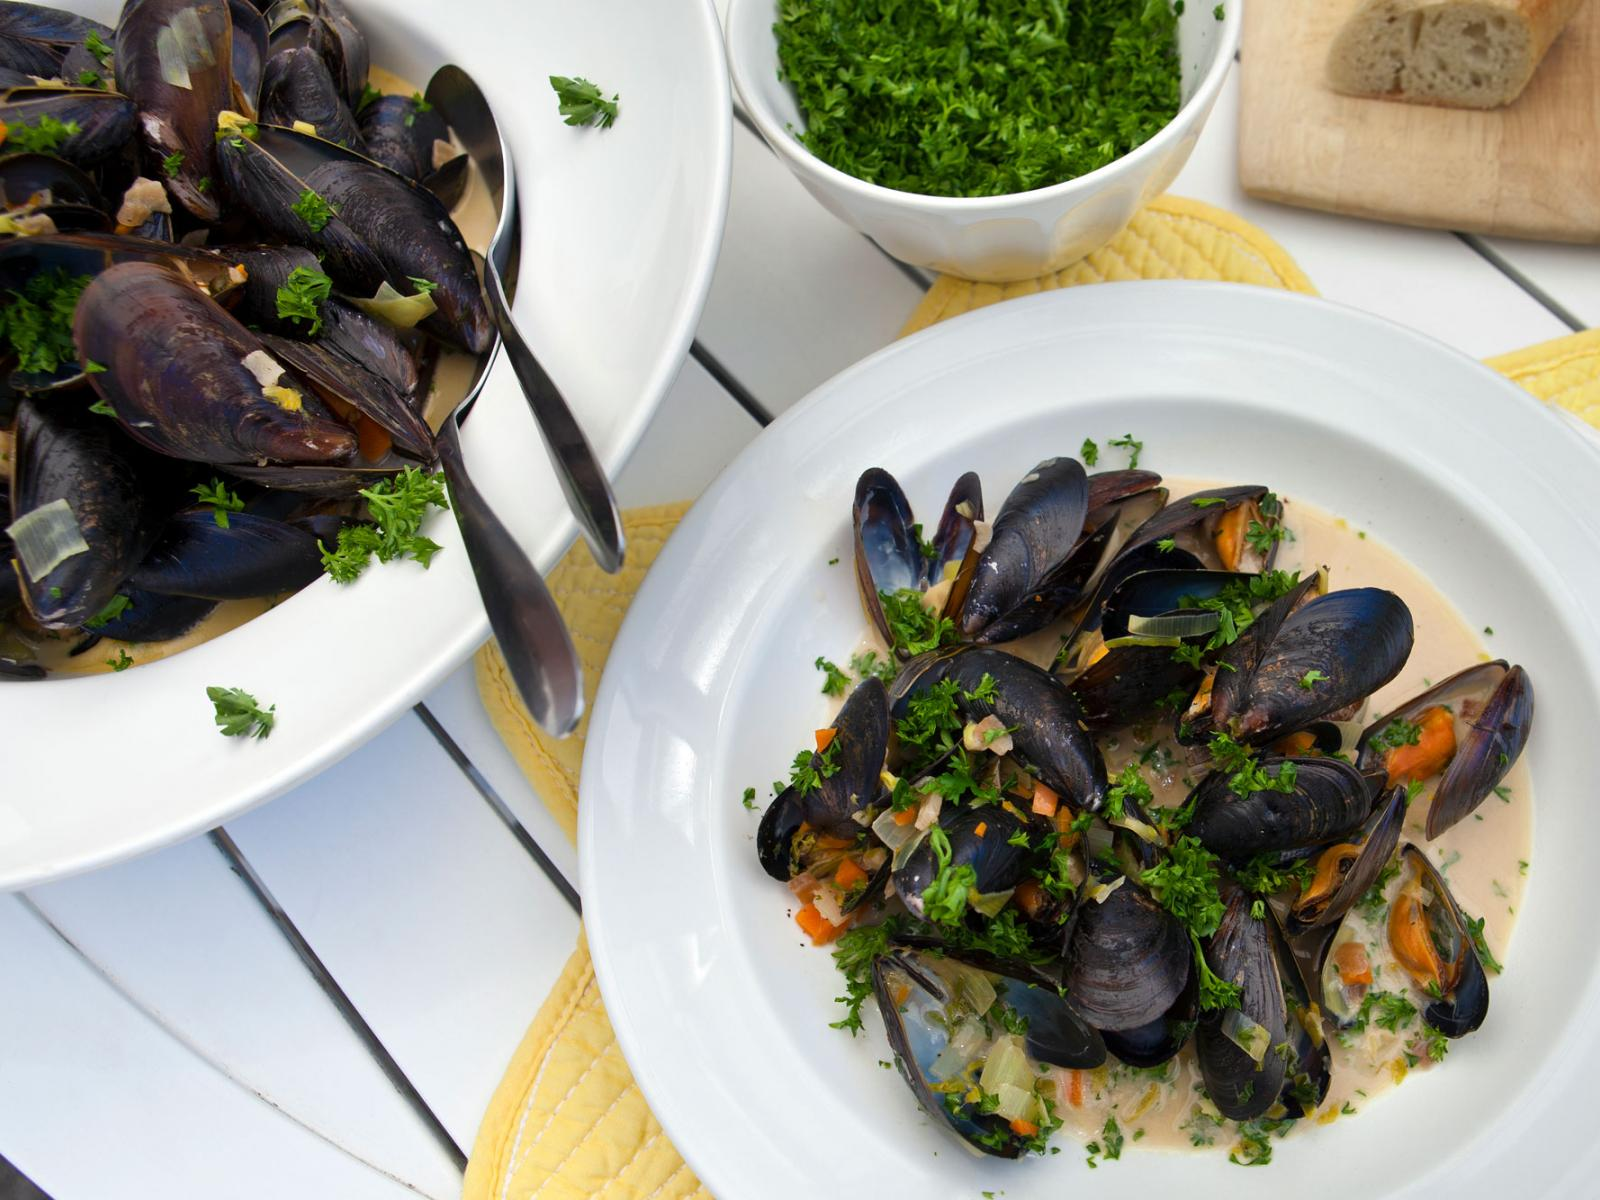 Steamed Mussels in a Beer, Cream and Garlic Sauce Recipe